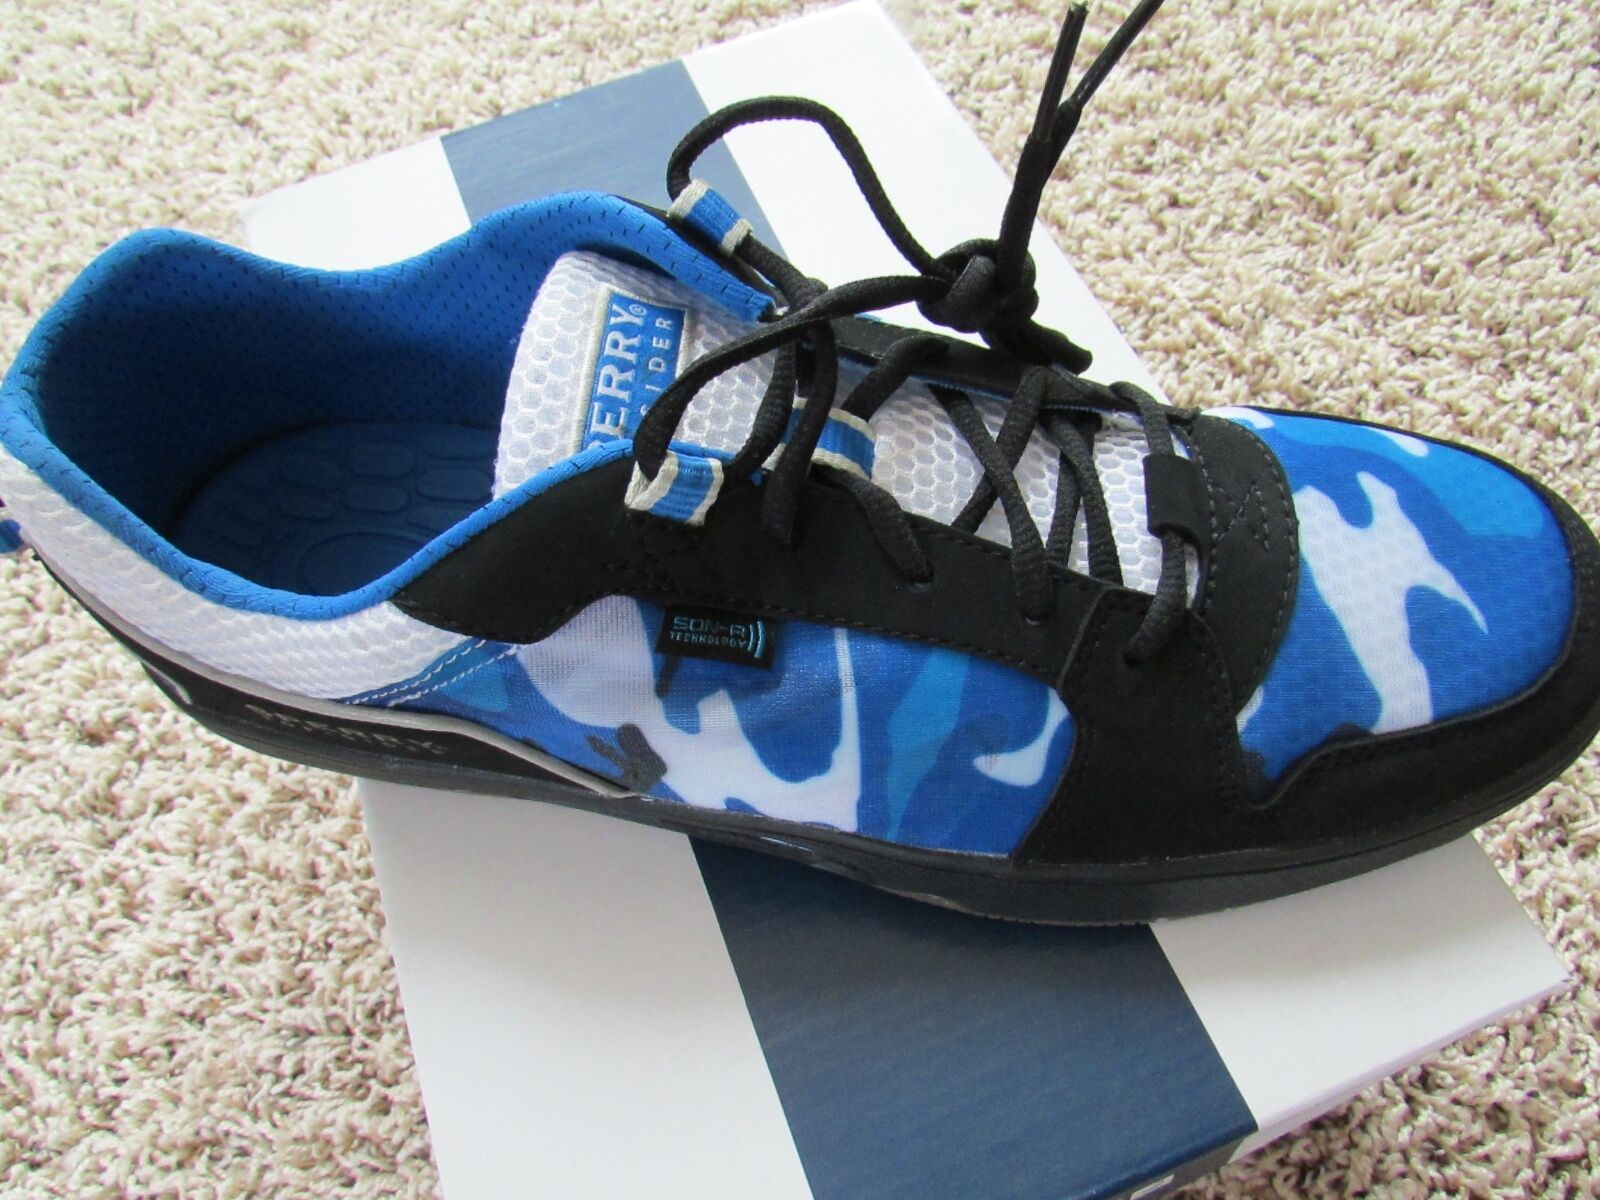 NEW SPERRY SON-R PONG BLUE CAMO SNEAKER SHOES MENS 8.5 ATHLETIC